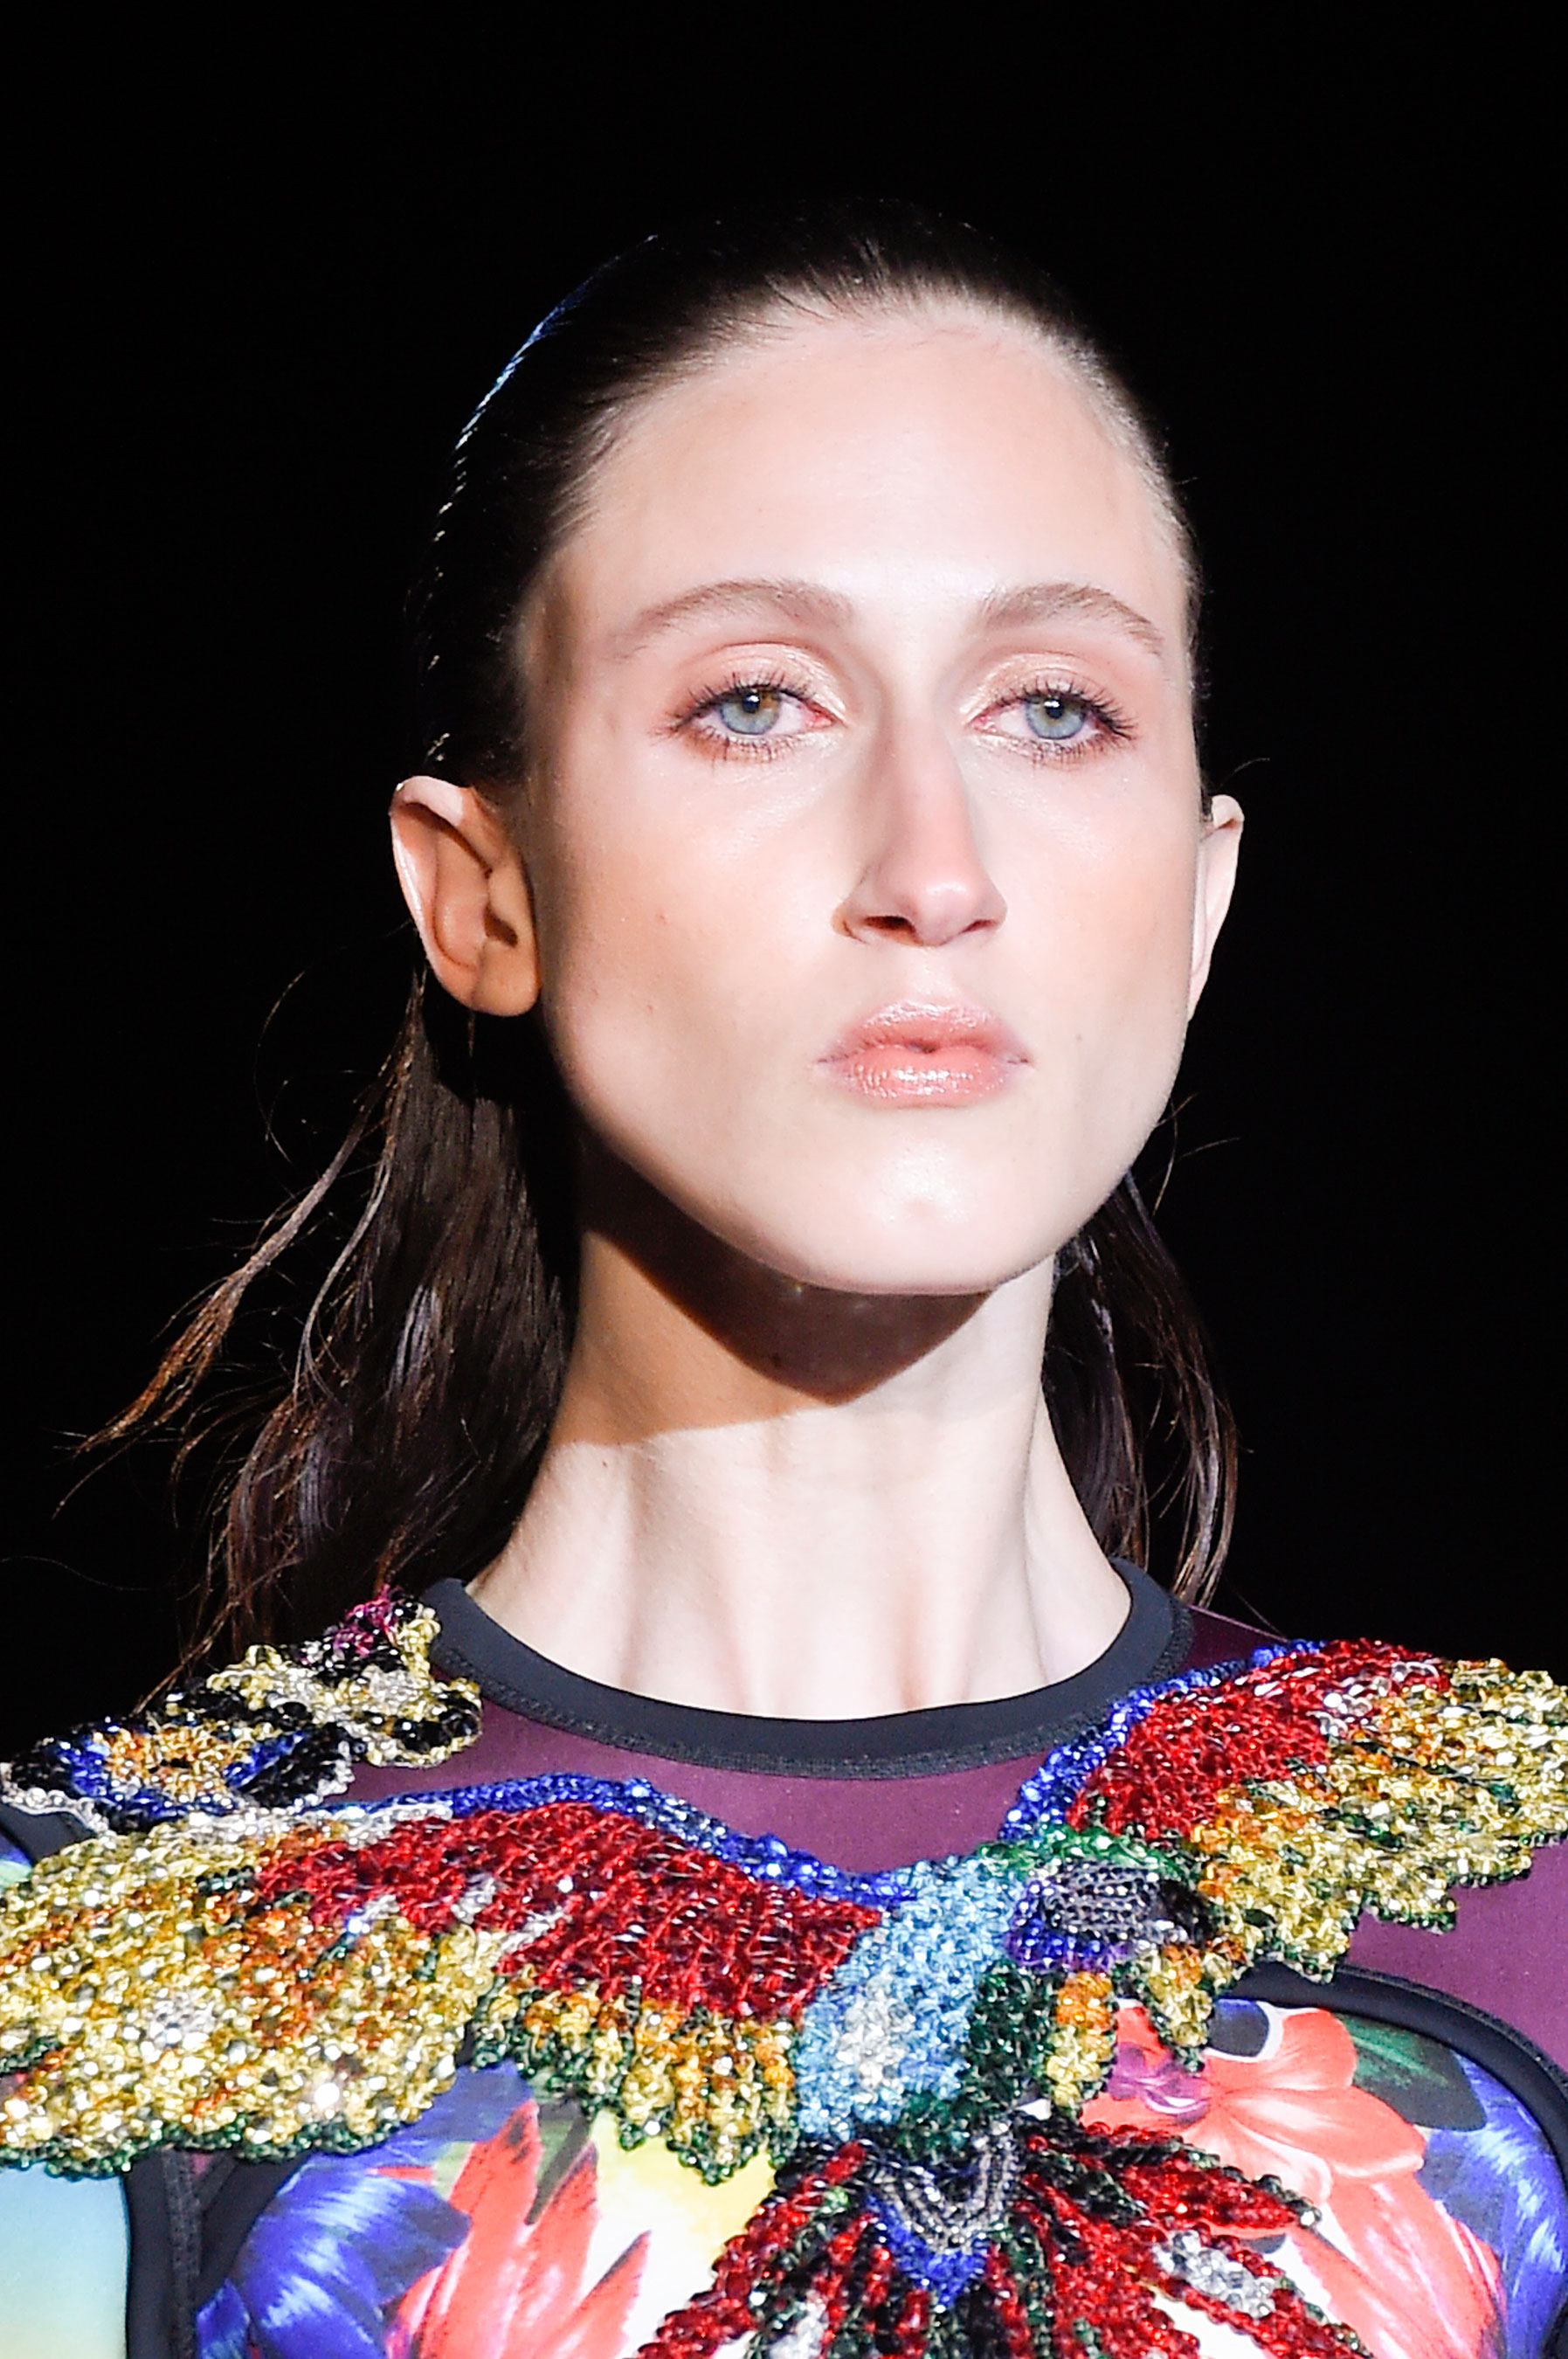 DSquared2-runway-beauty-spring-2016-fashion-show-the-impression-034